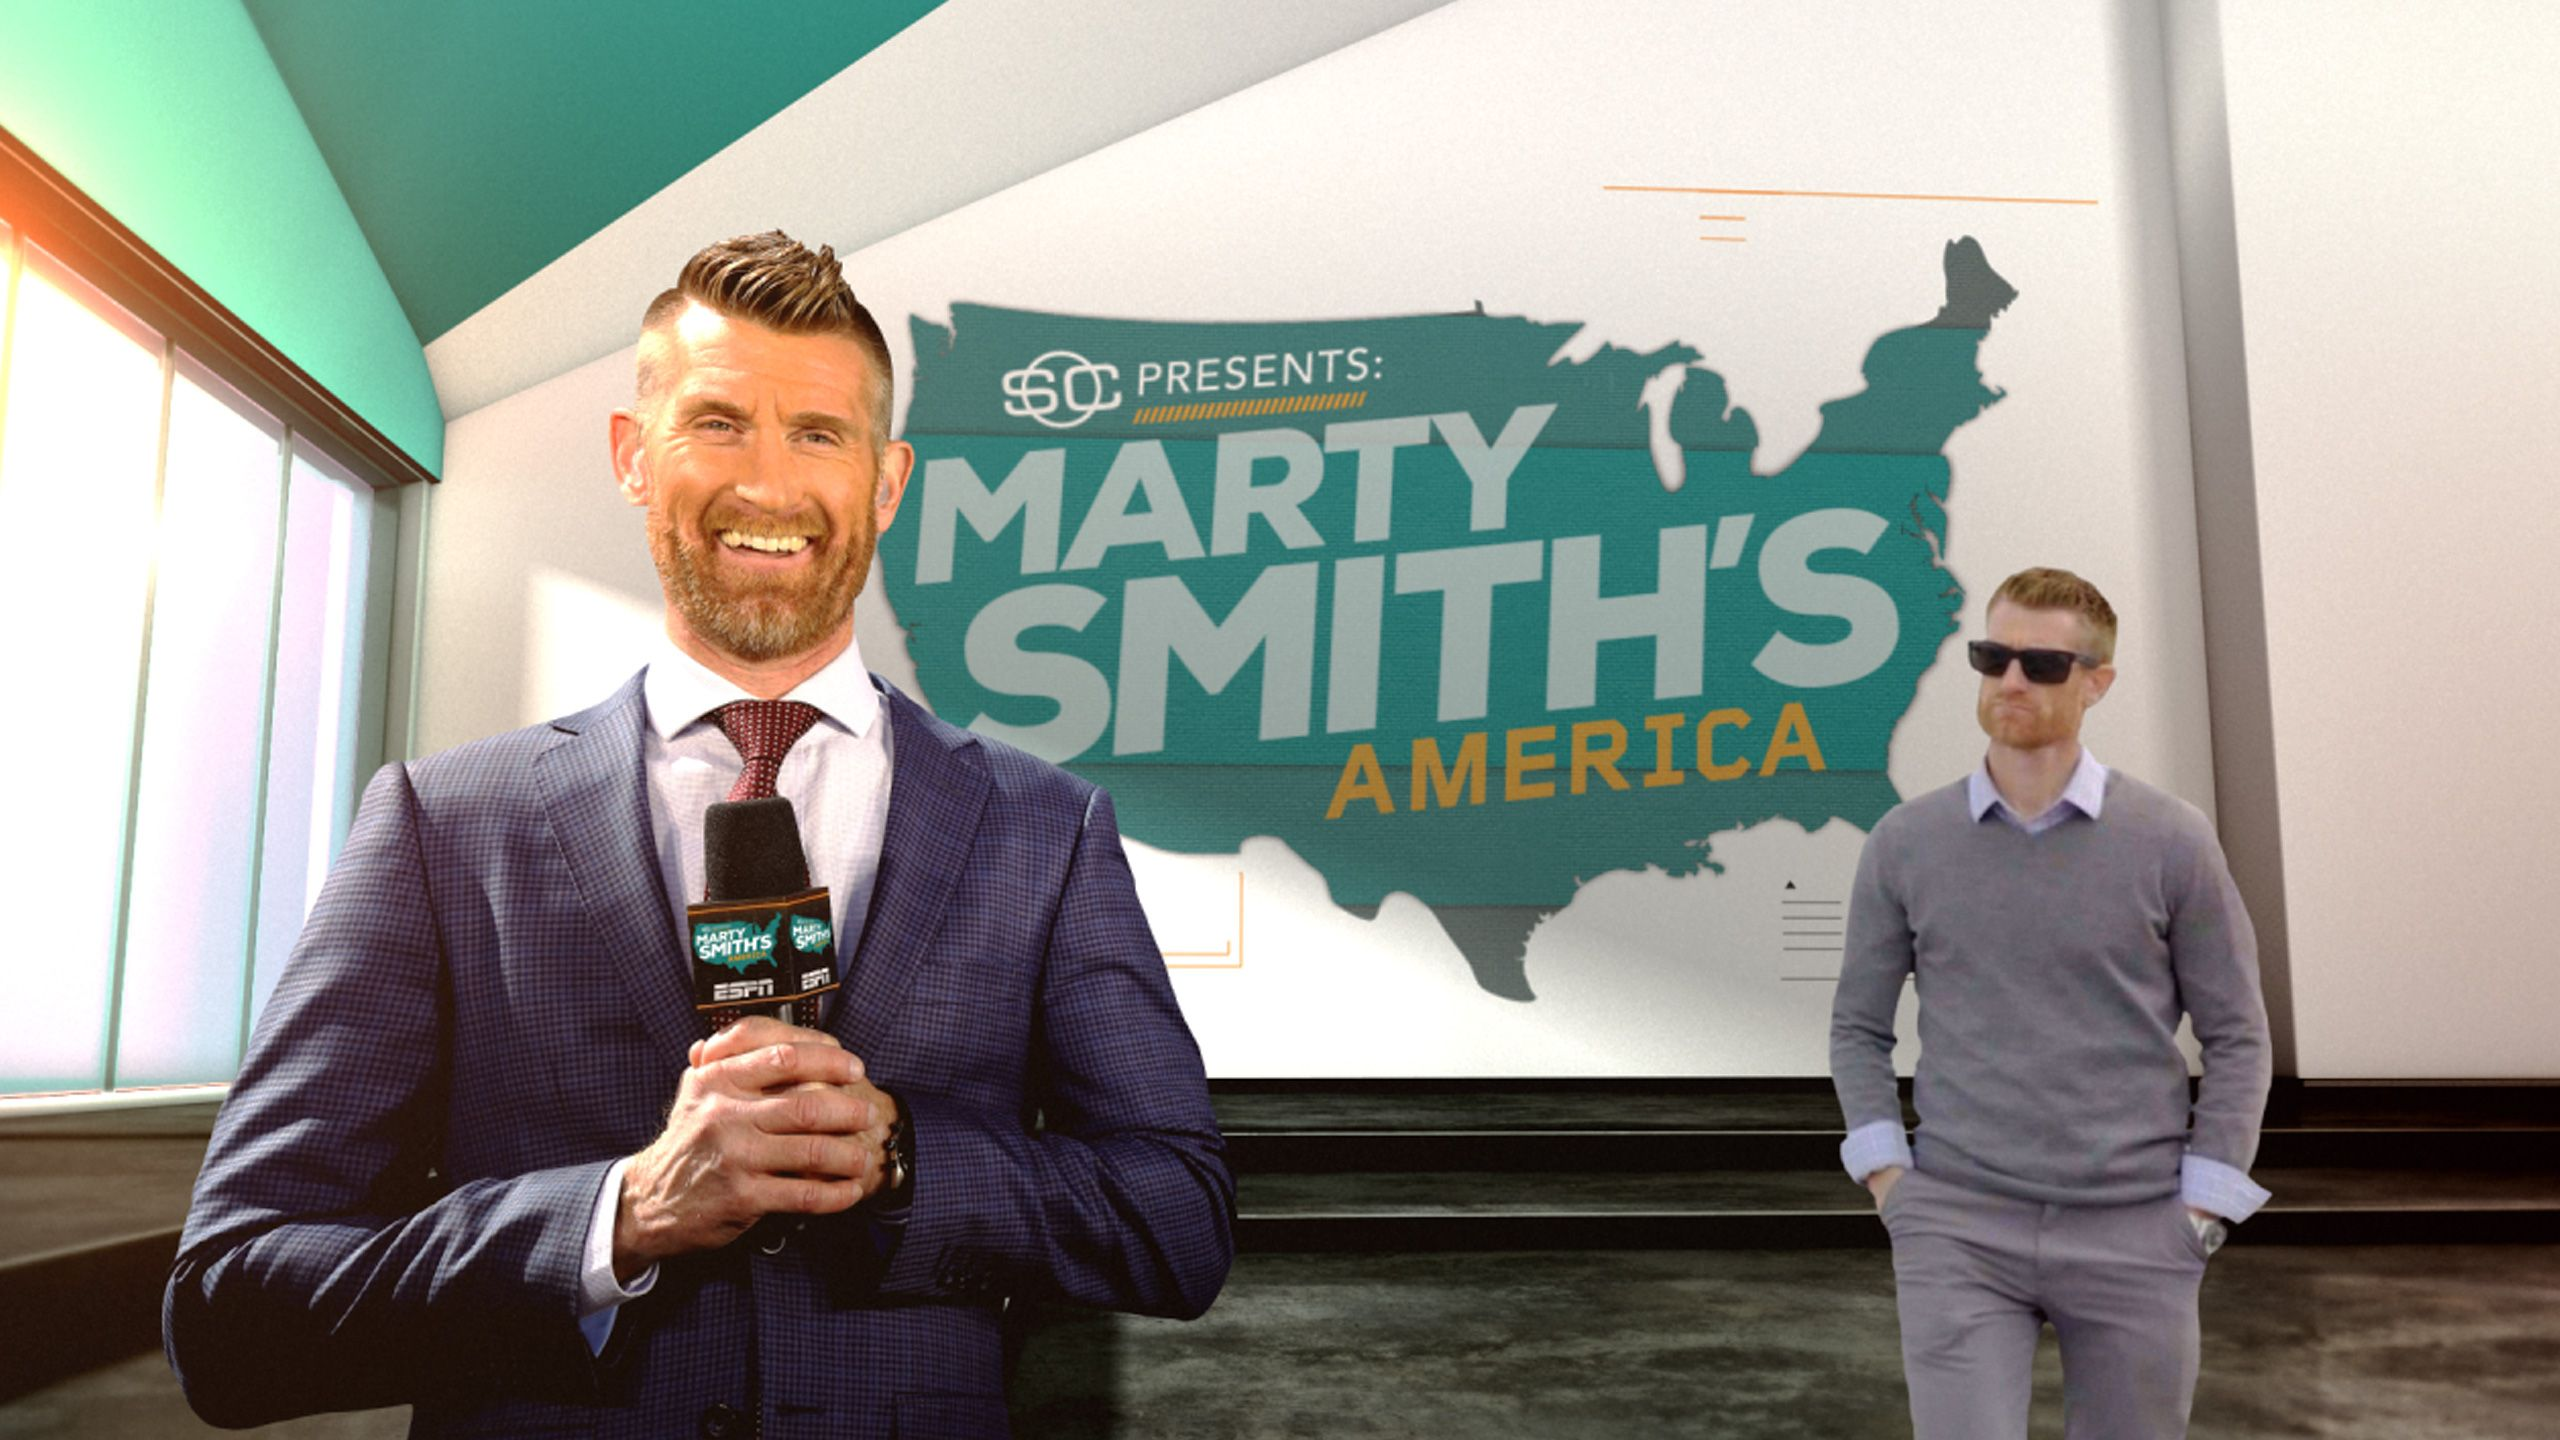 Marty Smith's America